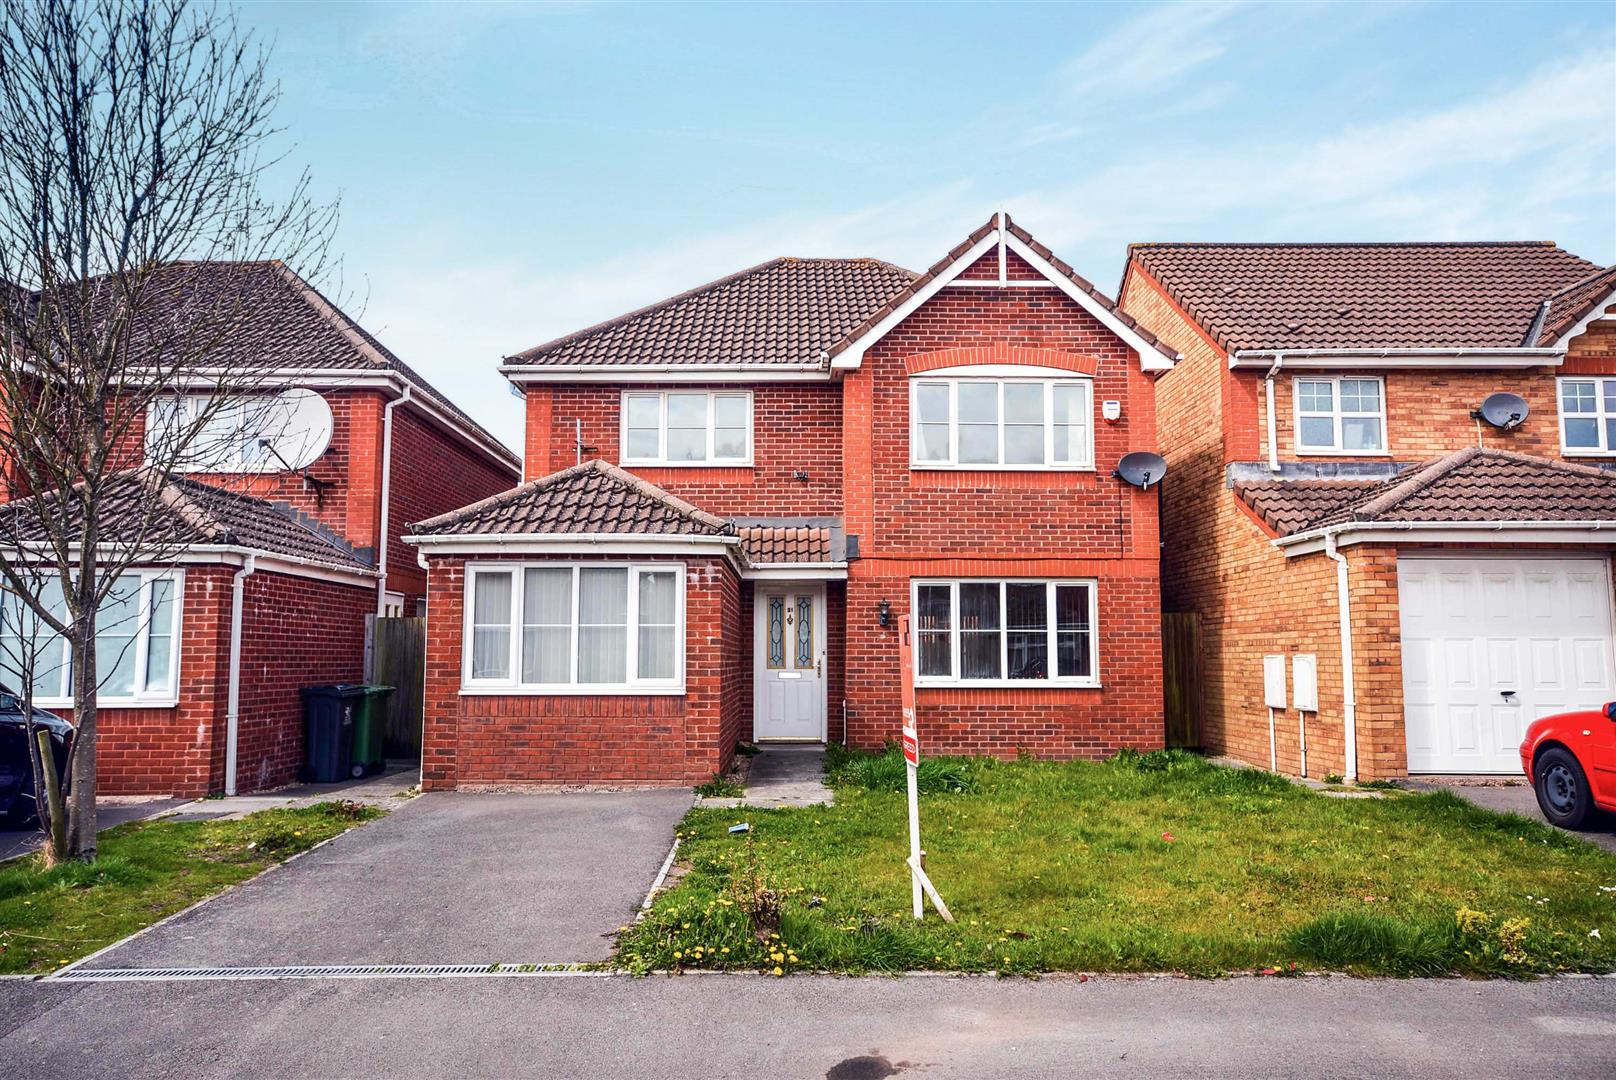 4 bed detached house for sale in Glan Rhymni, Cardiff  - Property Image 1